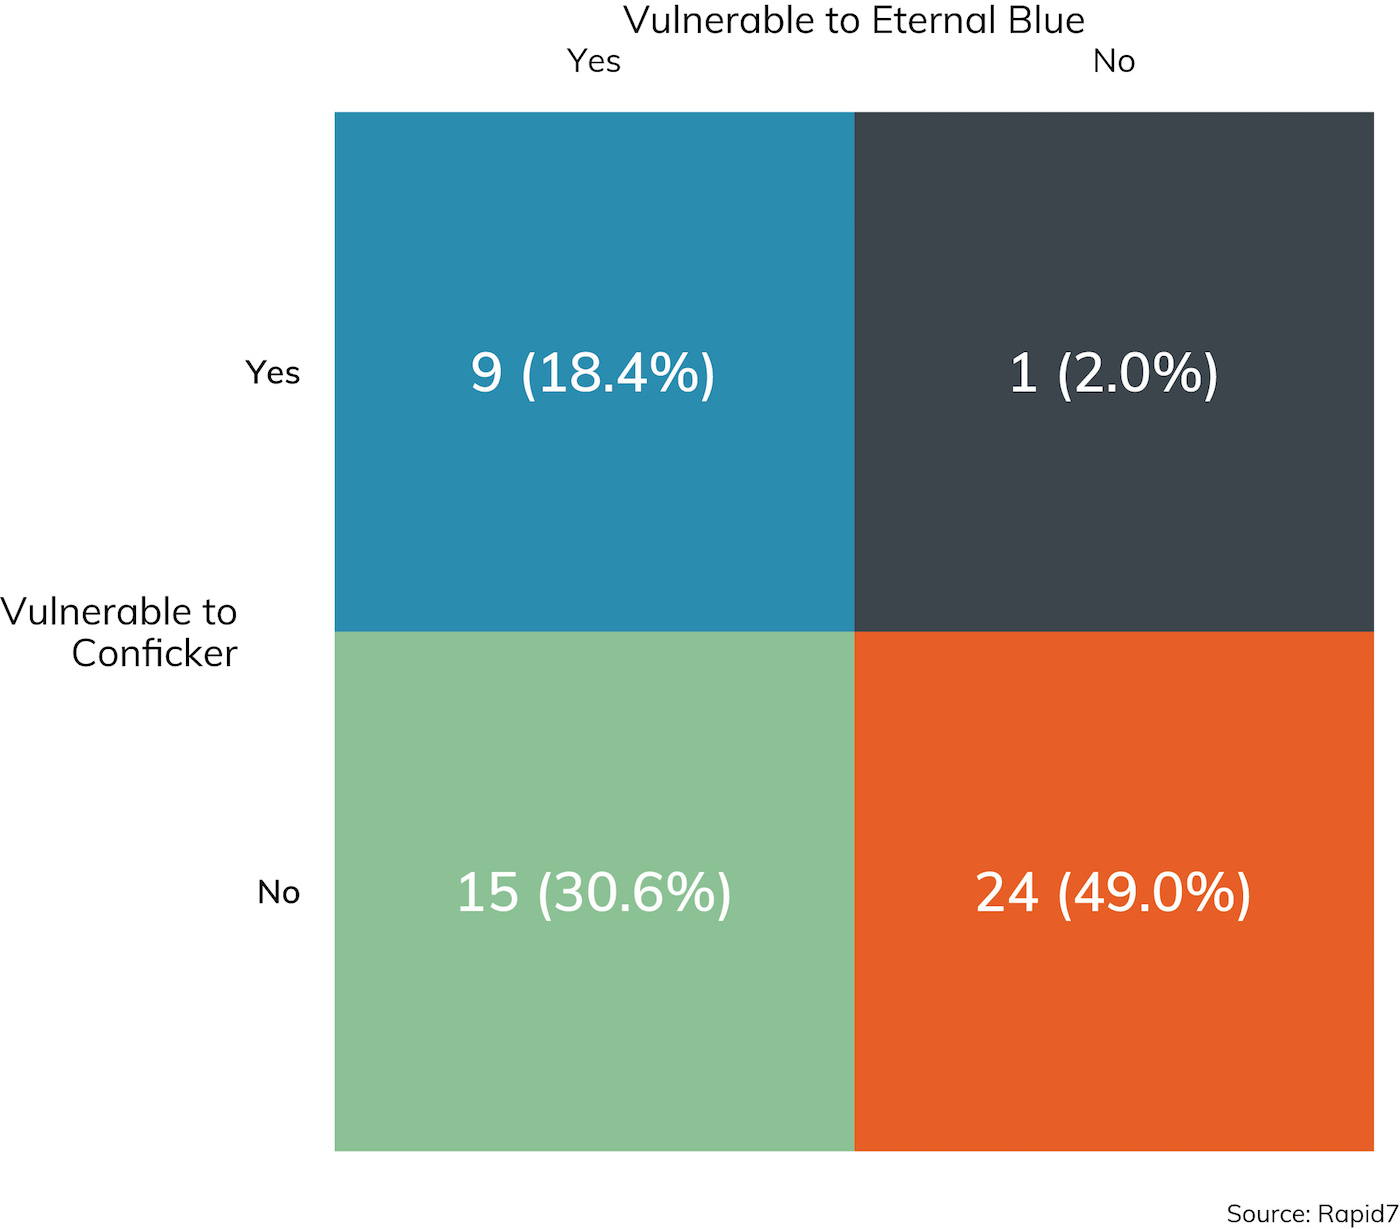 Figure 9: Were any hosts vulnerable to EternalBlue and/or Conficker? (Count reflects only available responses.)